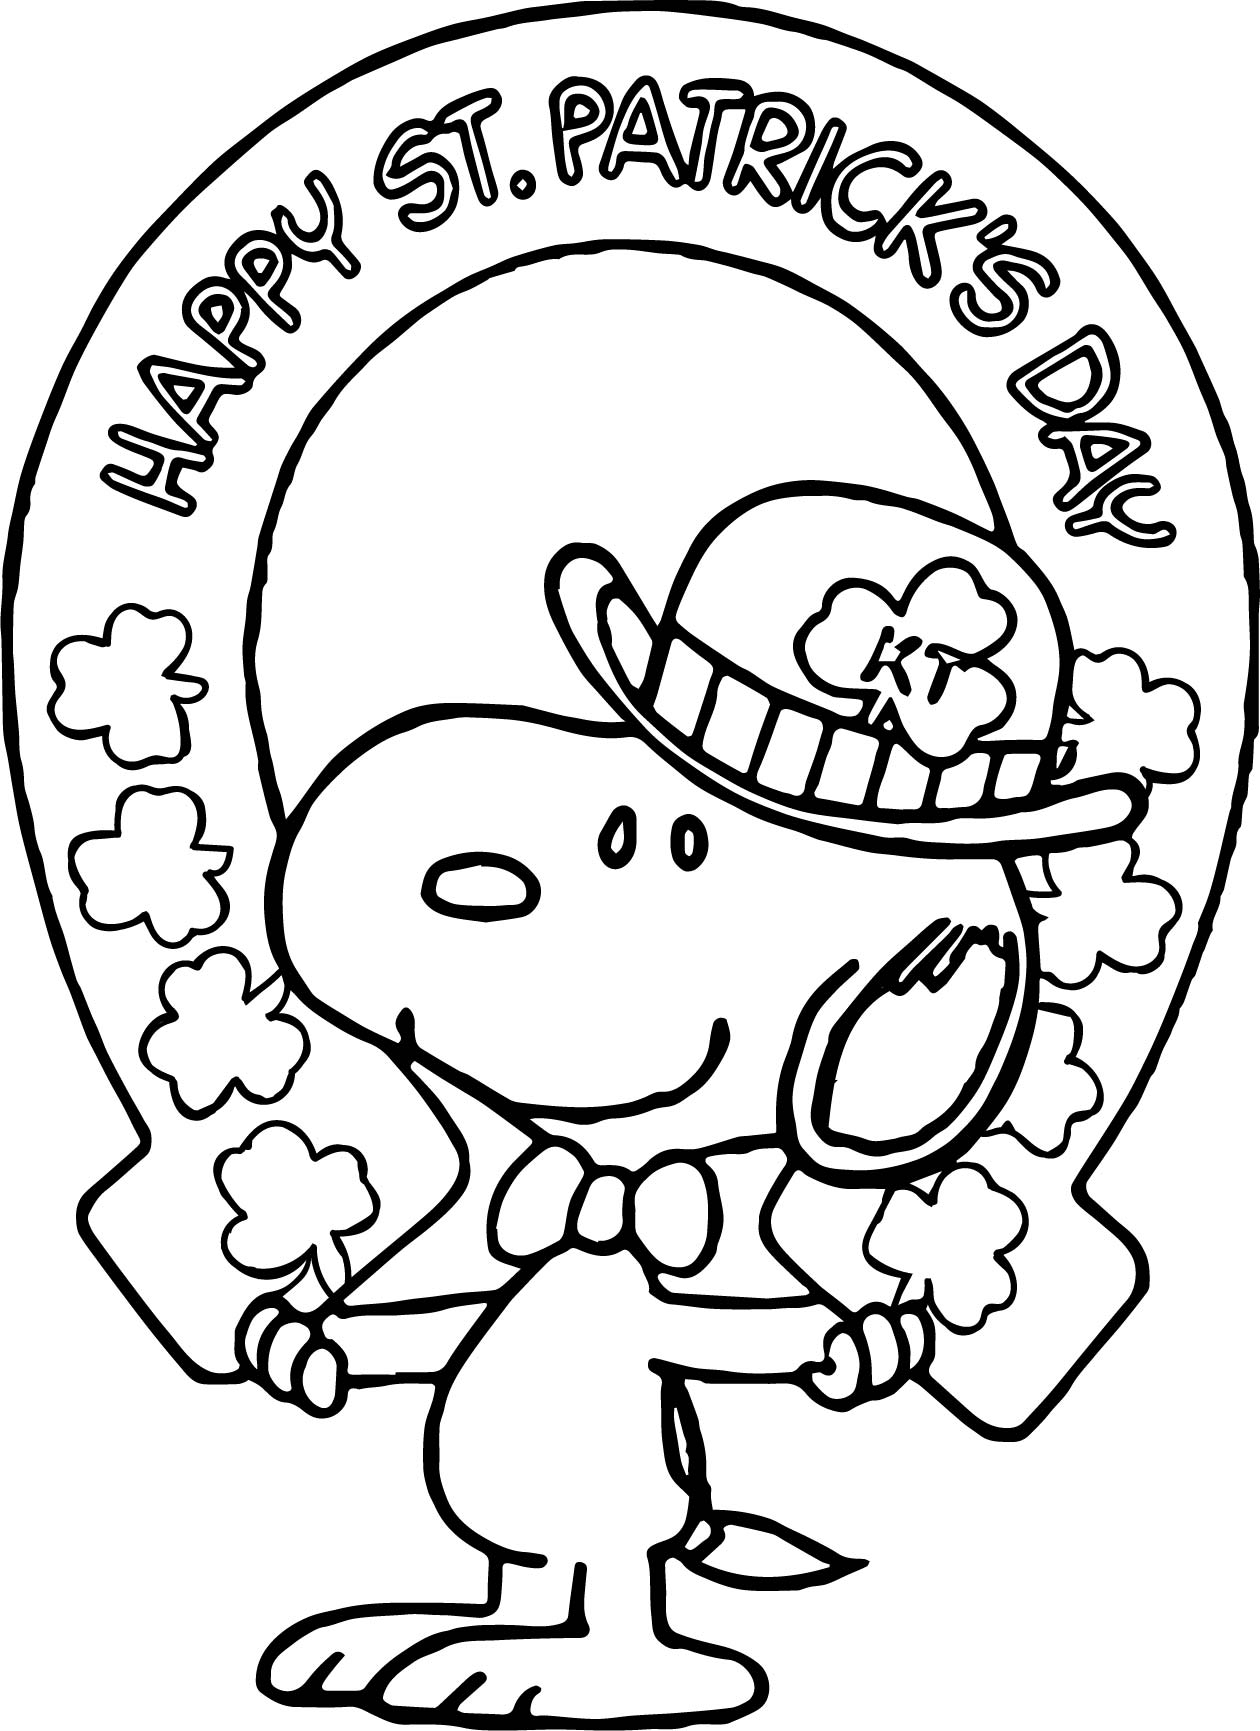 Beachy St Patrick Snoopy All Saint Day Coloring Page